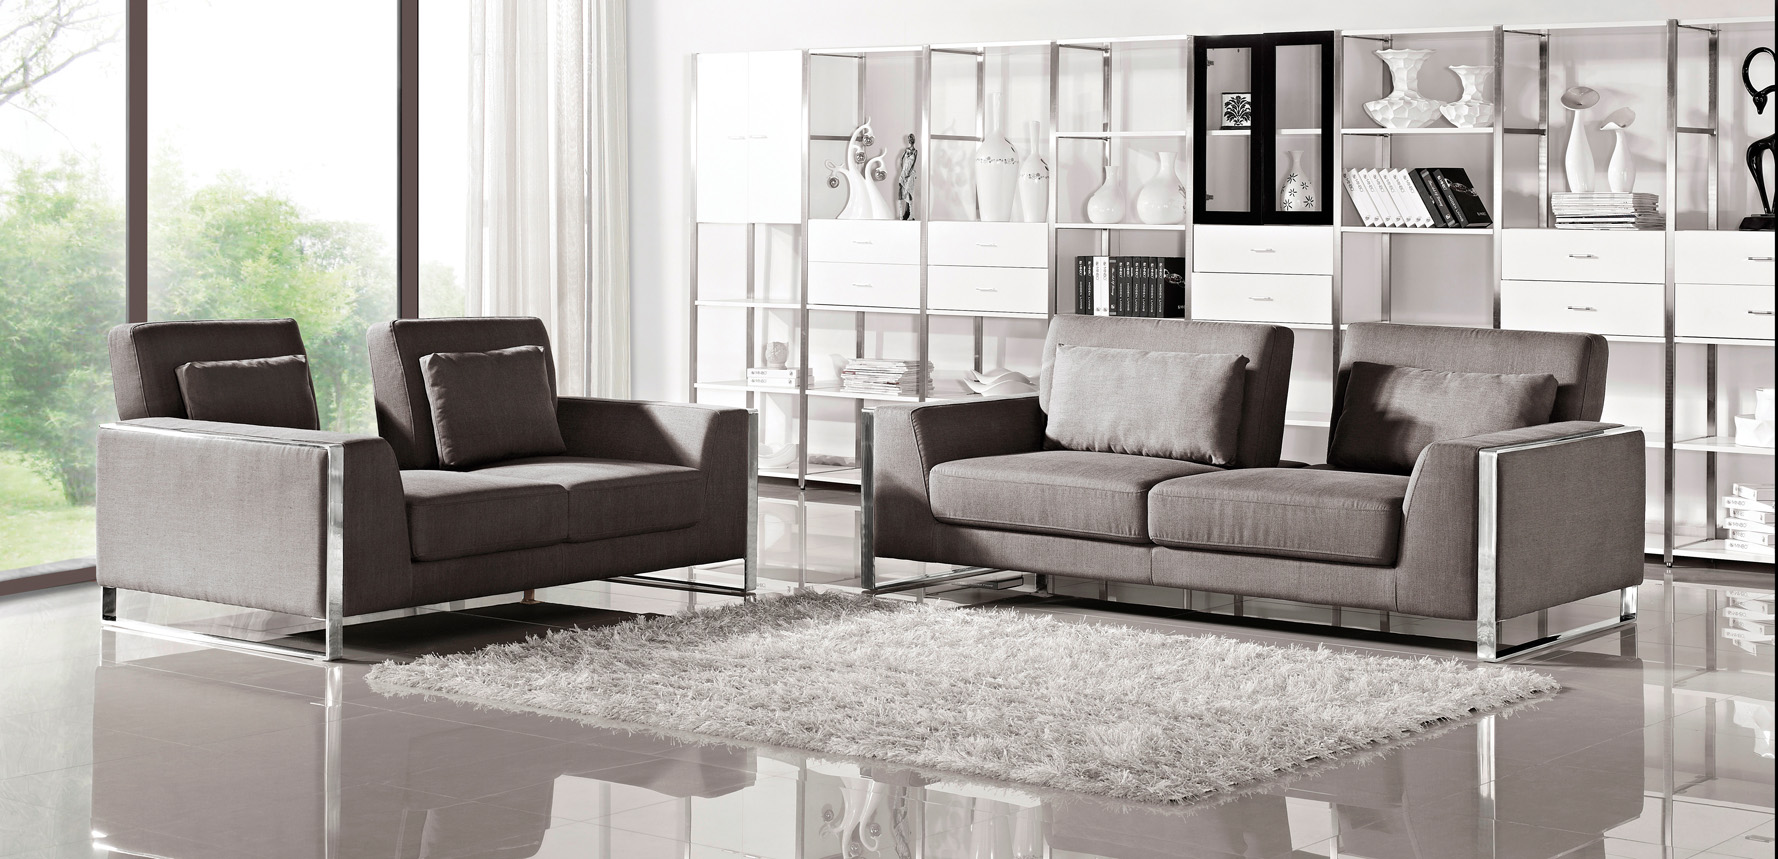 Grey Orion Fabric Sofa Set With Adjustable Backrests Zuri Furniture